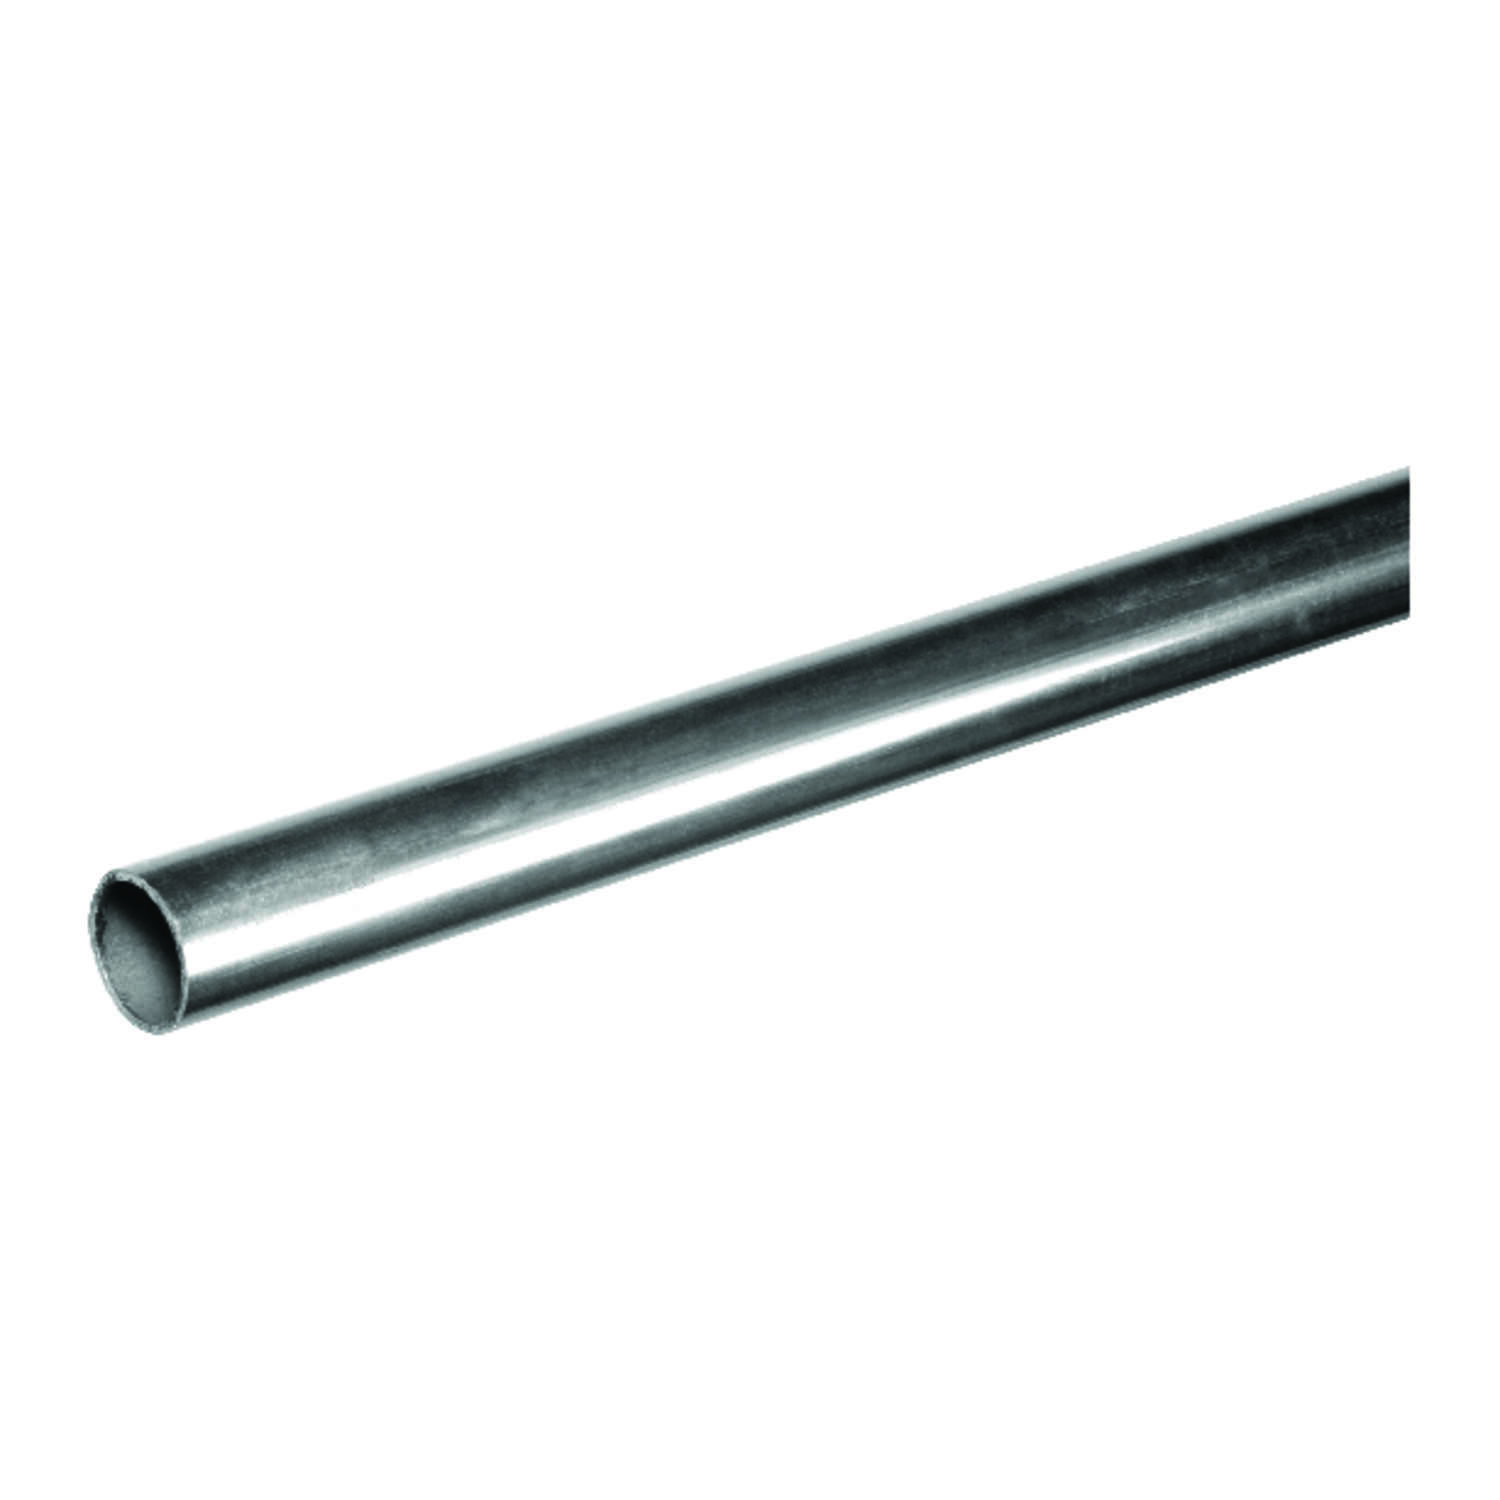 Boltmaster  3/4 in. Dia. x 3 ft. L Round  Aluminum Tube